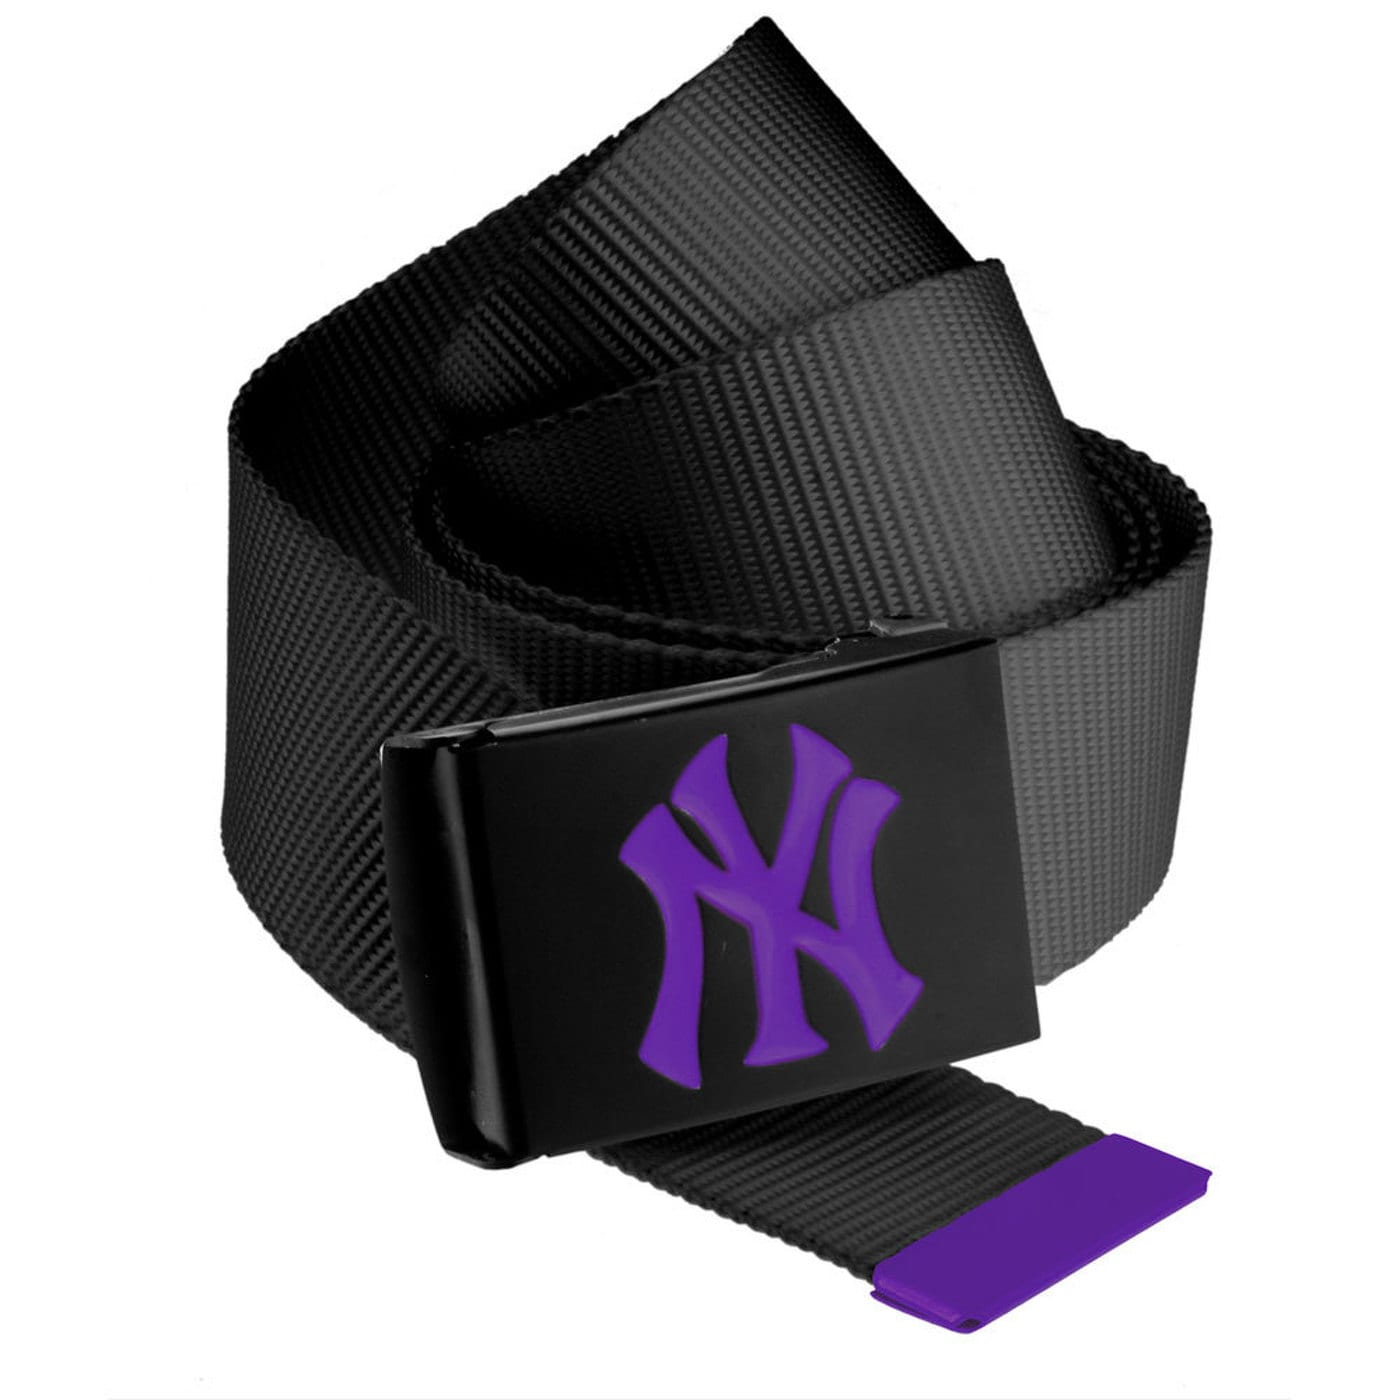 MD MLB Premium Black Woven Belt Single NY schwarz / lila